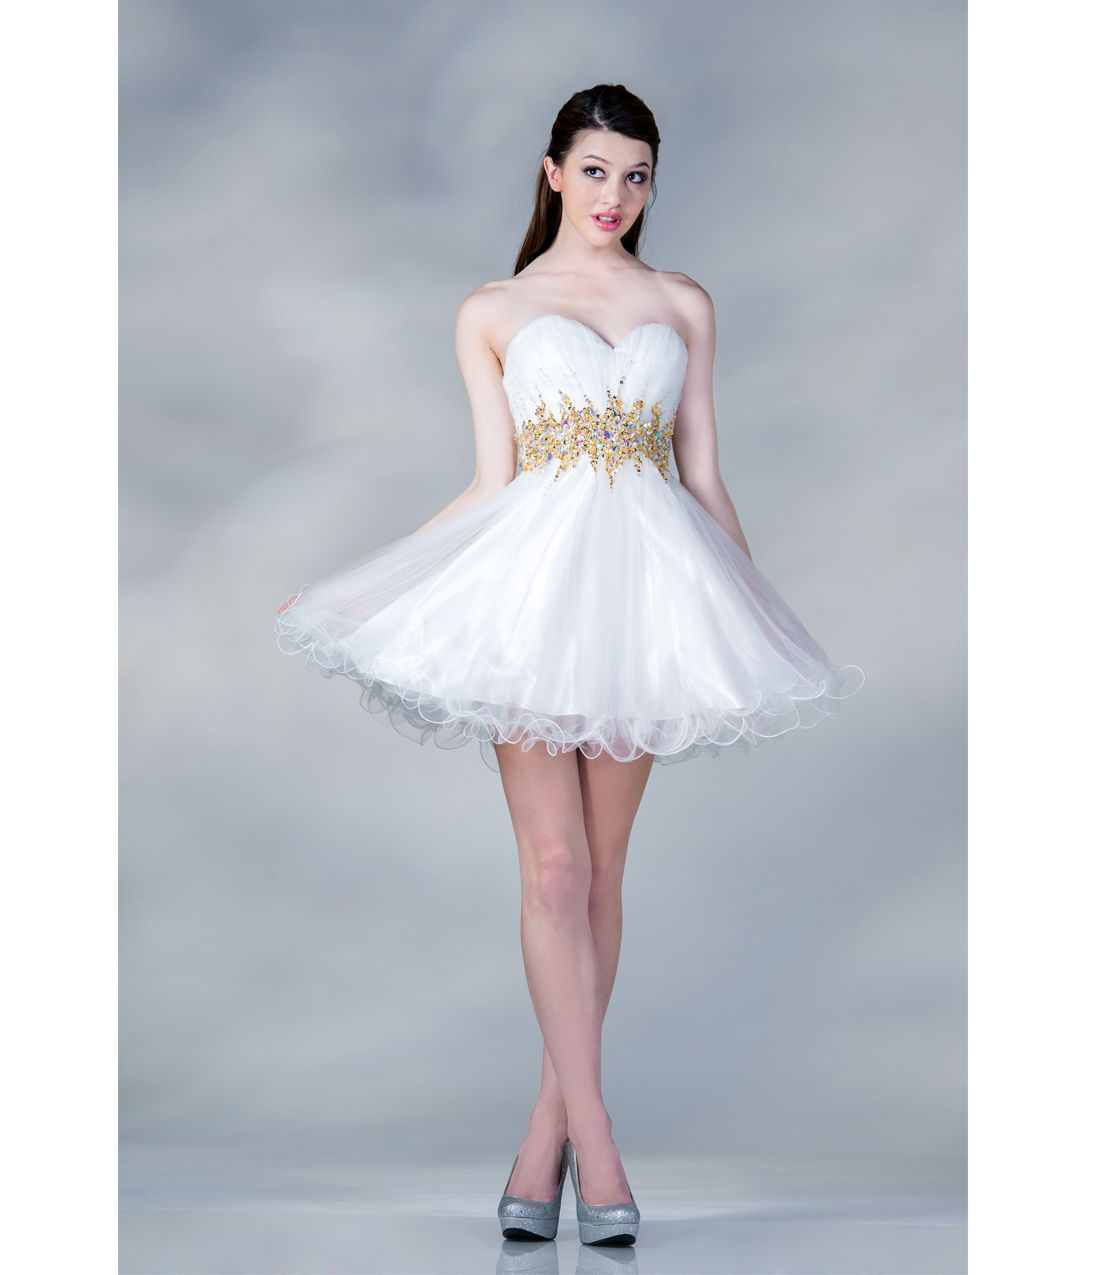 White & Gold Chiffon Sweetheart Short Prom Dress | Short Prom ...